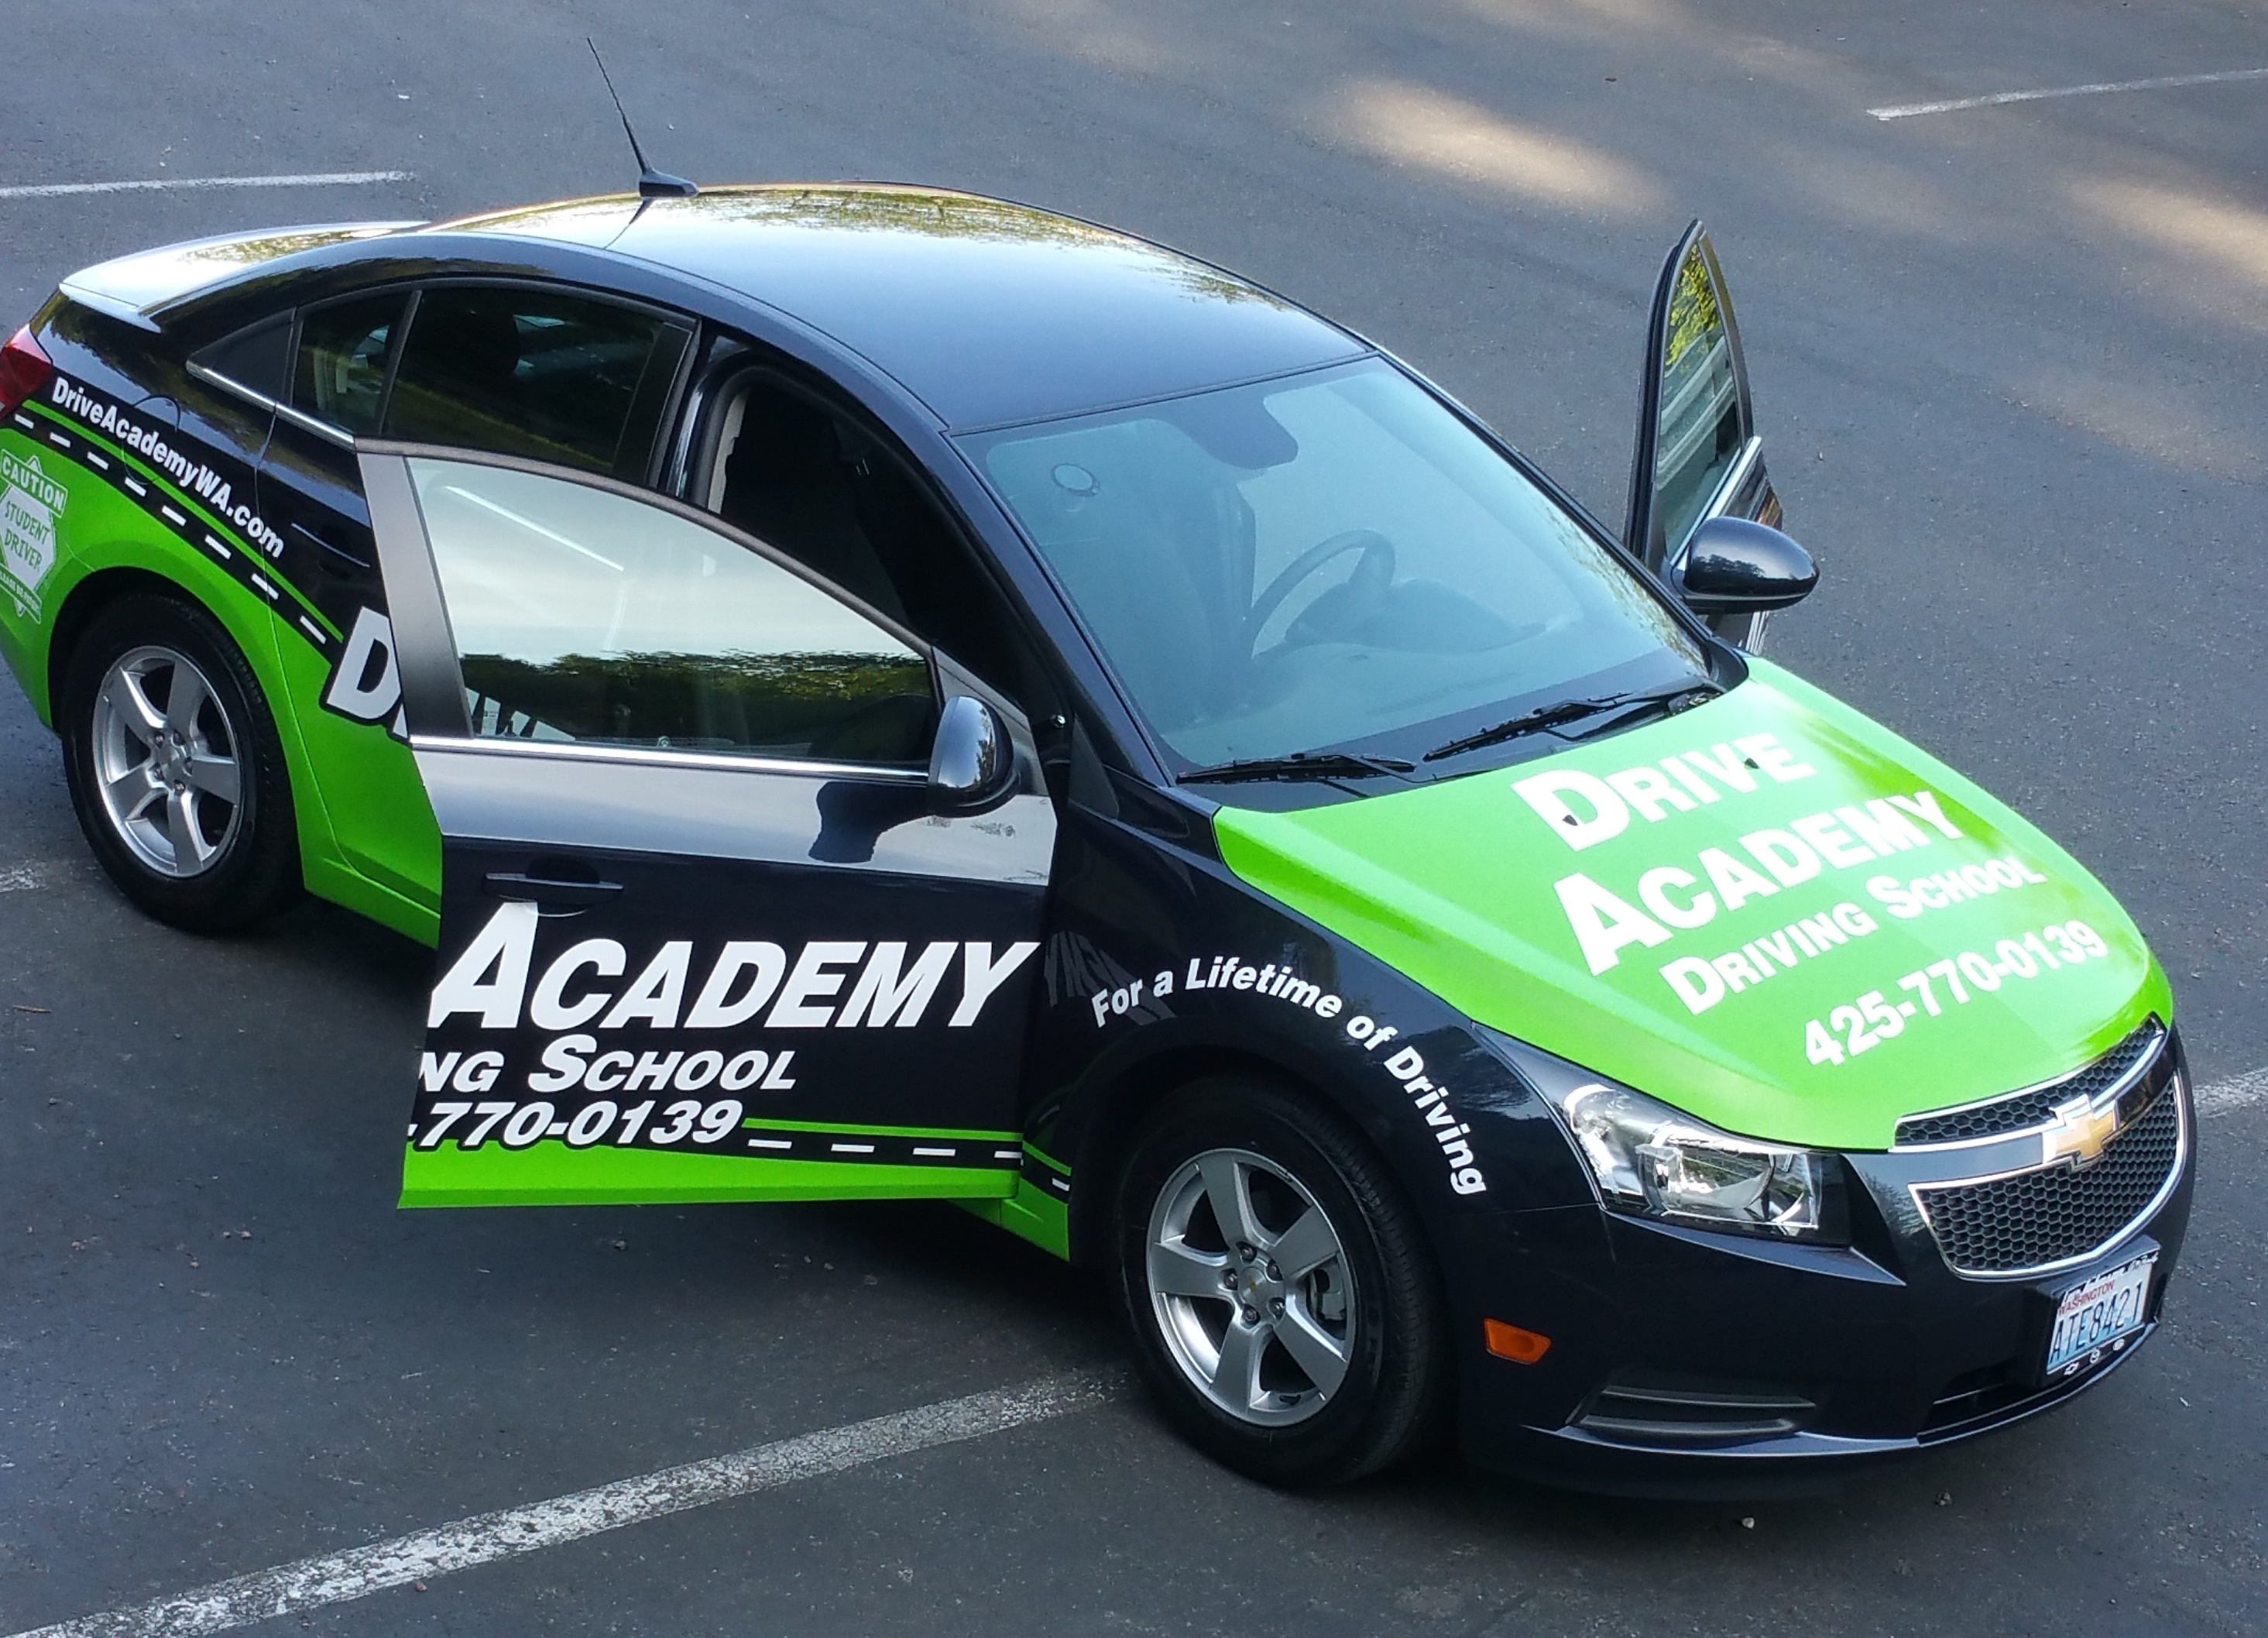 Drive Academy Driving School